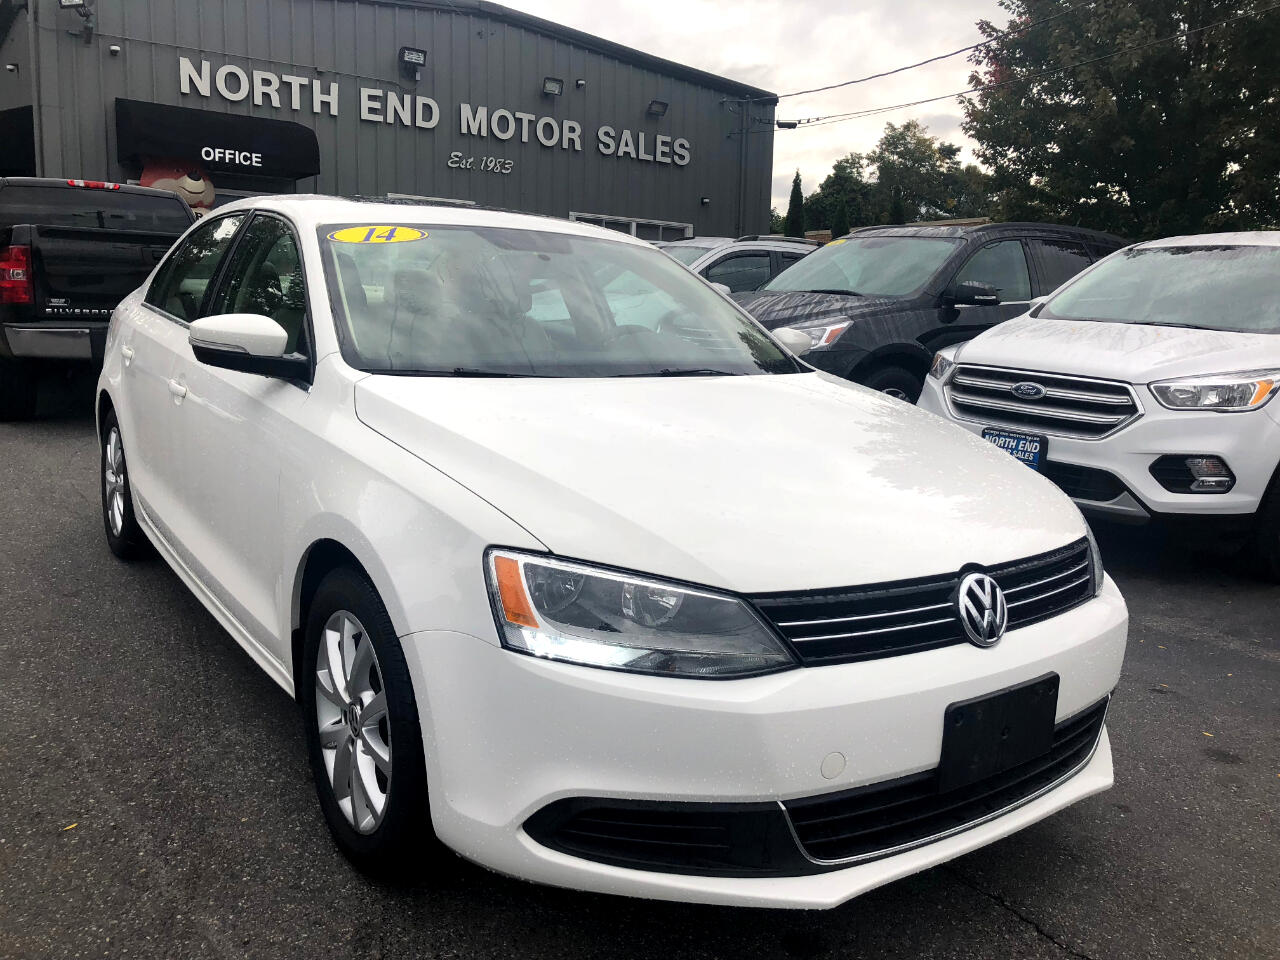 2014 Volkswagen Jetta Sedan 4dr Auto SE w/Connectivity/Sunroof PZEV